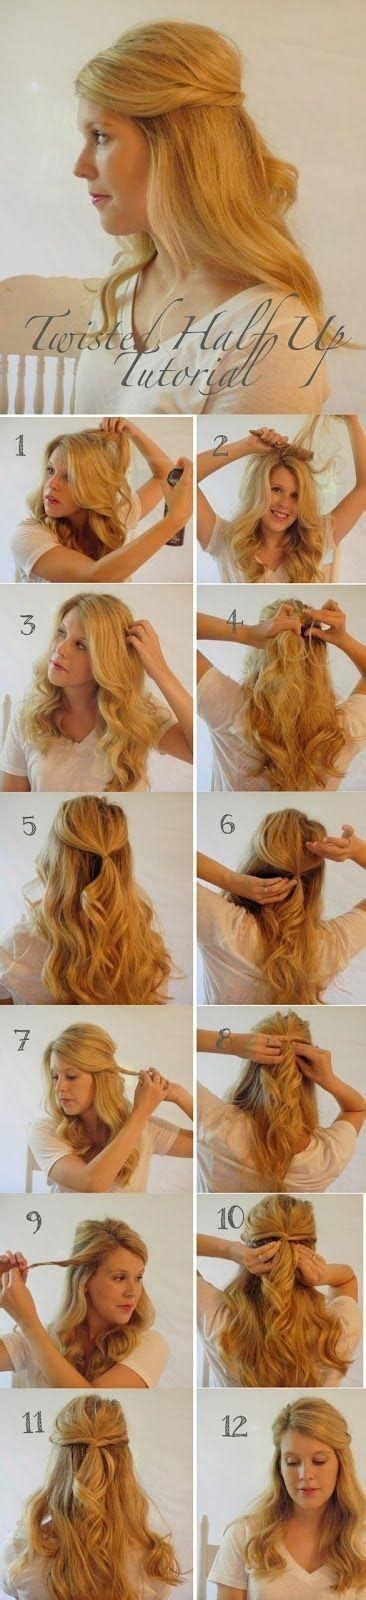 hairstyles ideas step by step twisted half up half down hairstyle ideas step by step